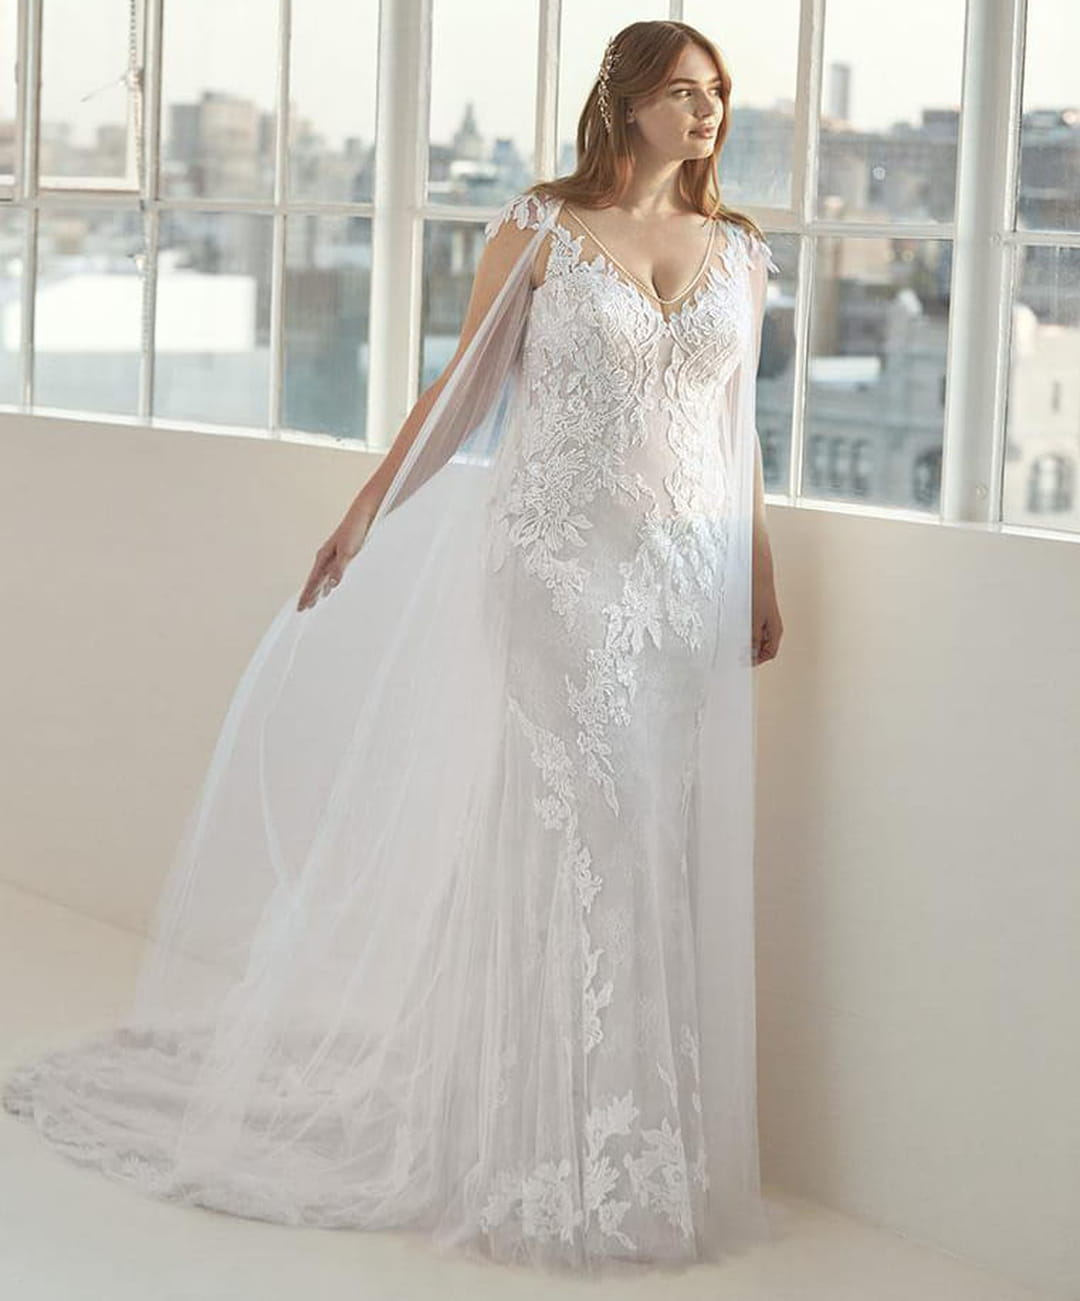 robe-de-mariee-dehaven-pronovias-ashley-graham